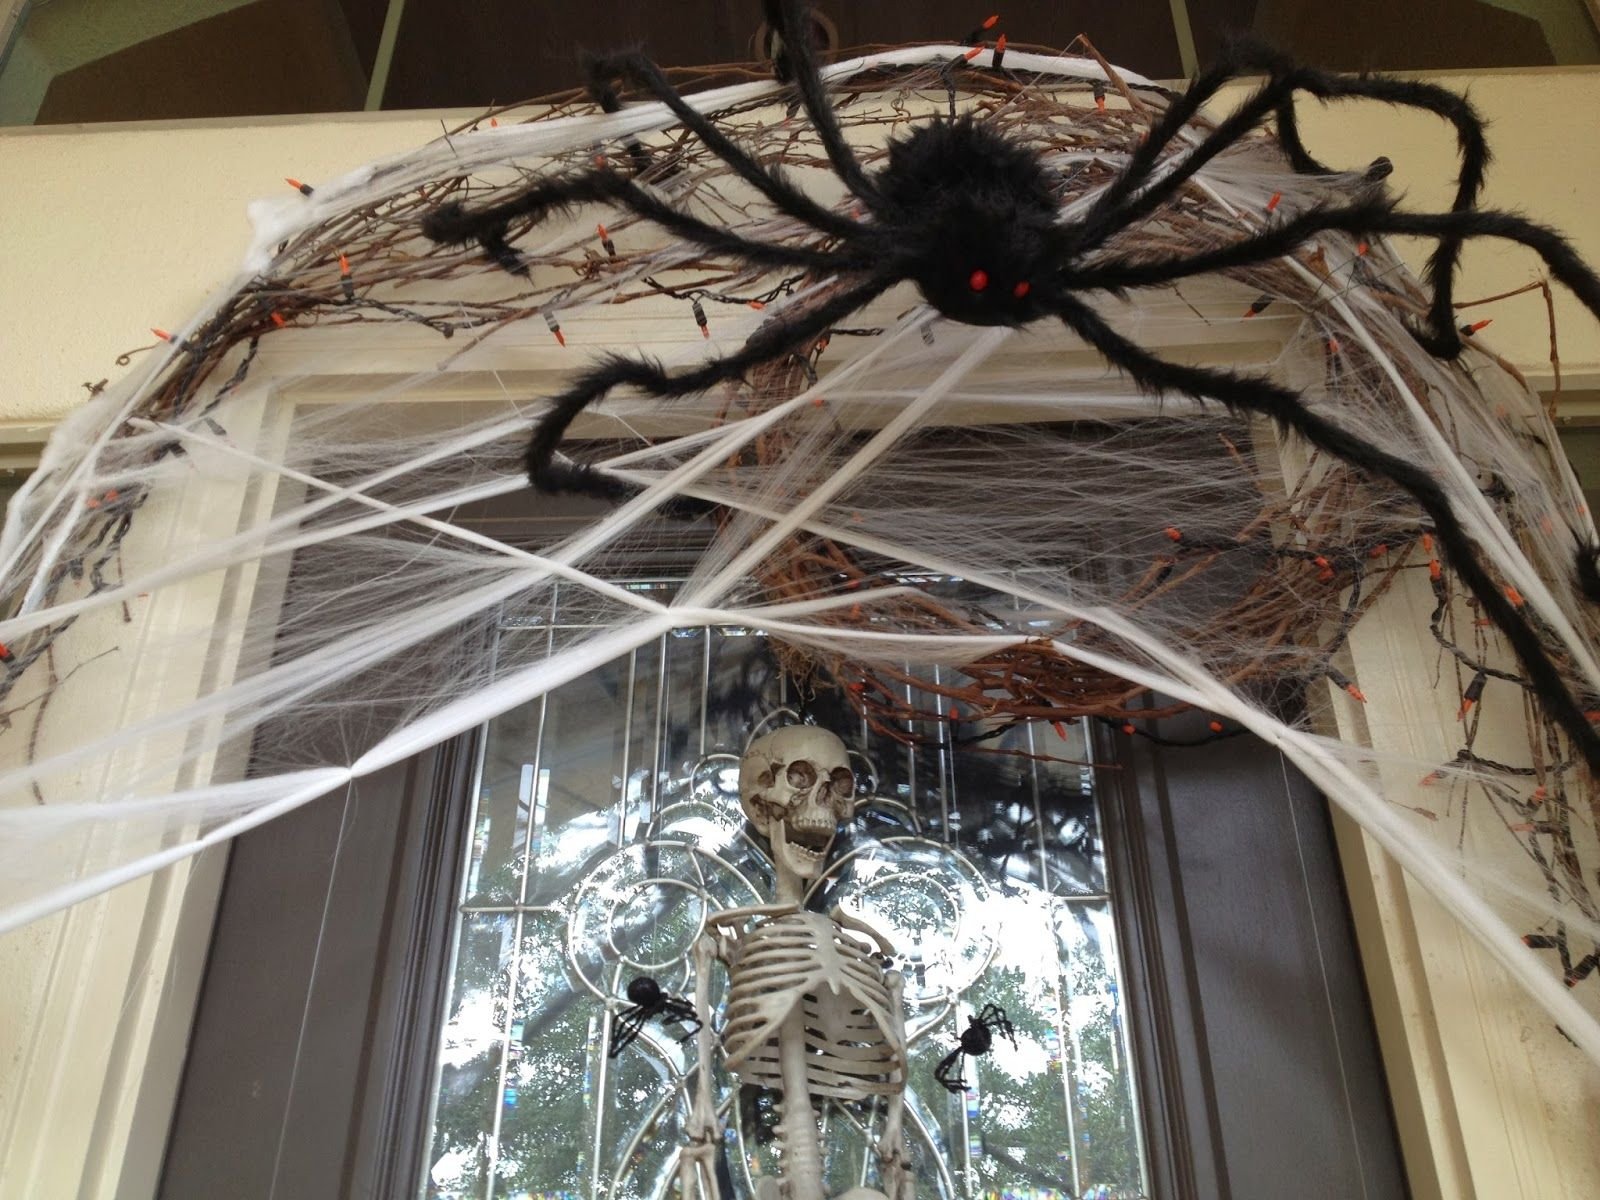 Exceptional Spider Webs Halloween Decorations Part - 7: A Big Black Spider With White Spider Web On The Cream Wall Combined With  Glass Windows With Skull. Surprising Easy Outdoor Halloween Decorations  Giving A ...